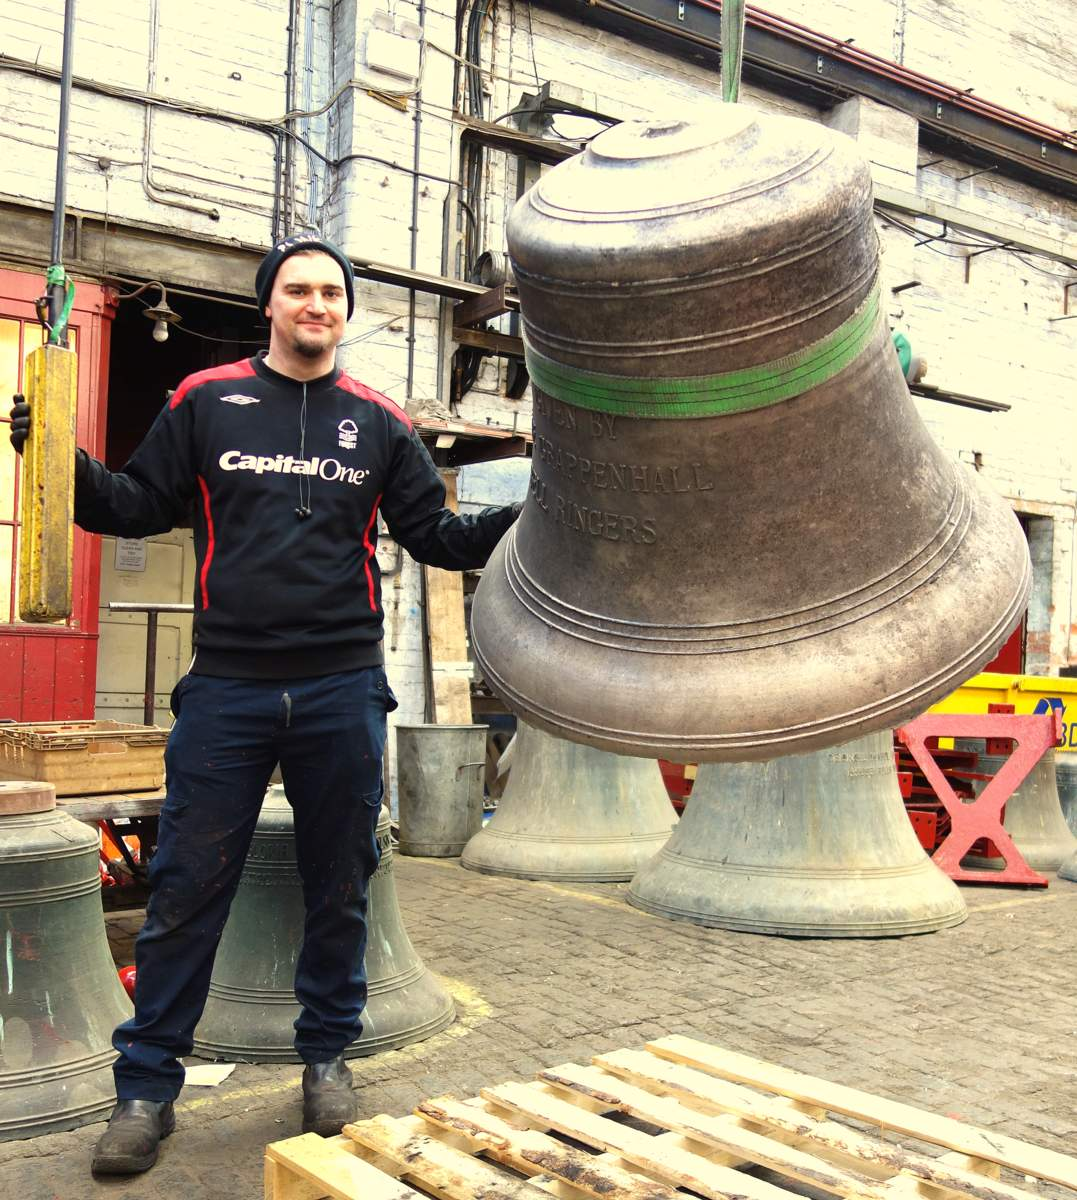 Will moves the newly cast tenor bell into the works for fettling.